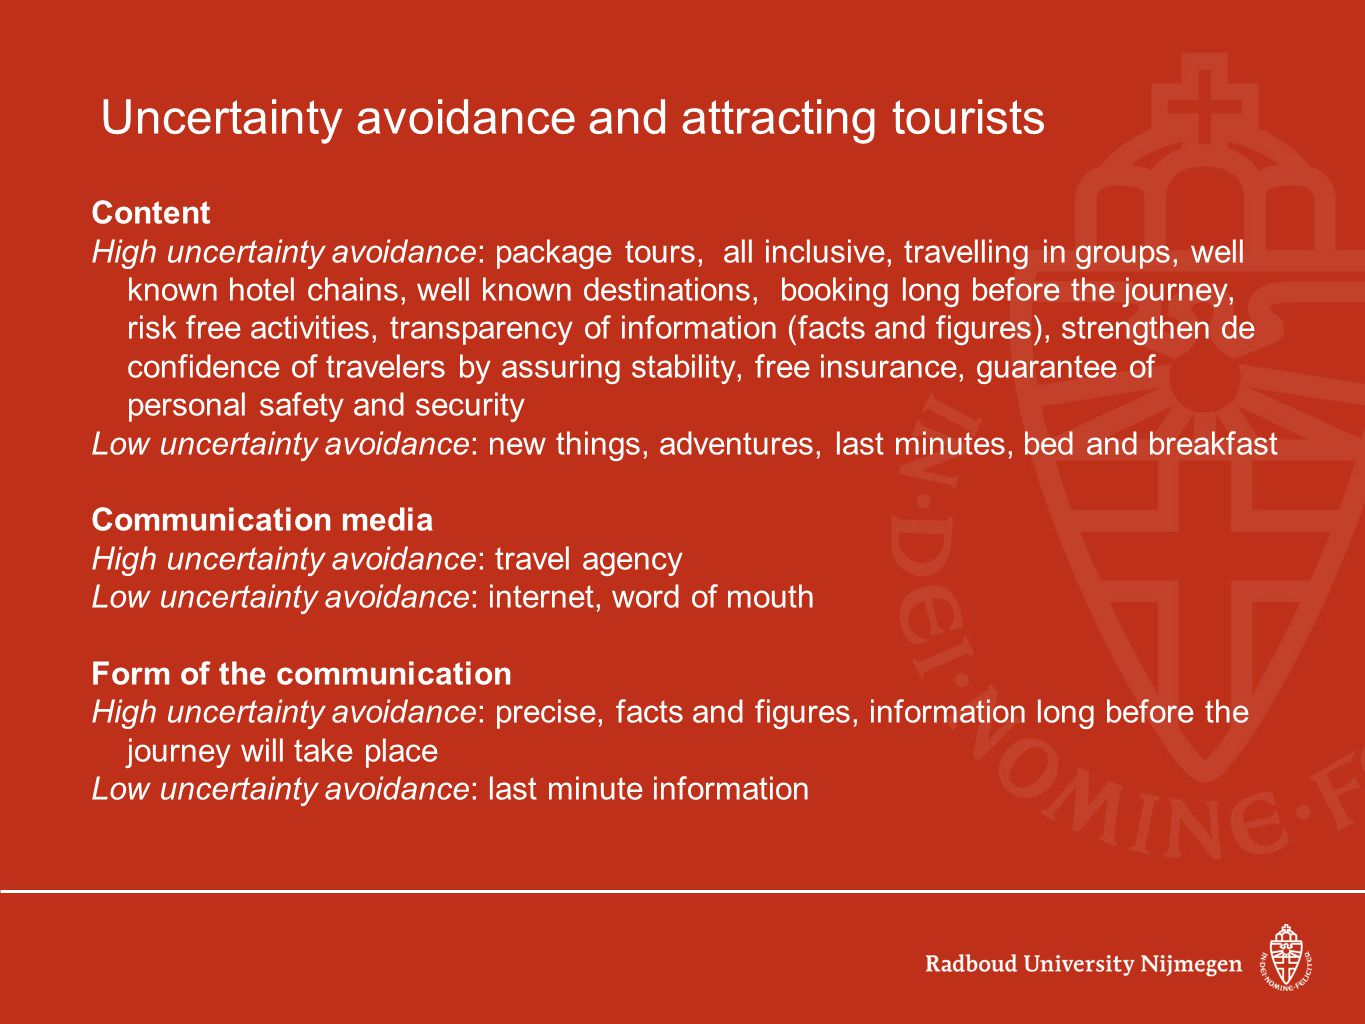 Uncertainty avoidance and attracting tourists